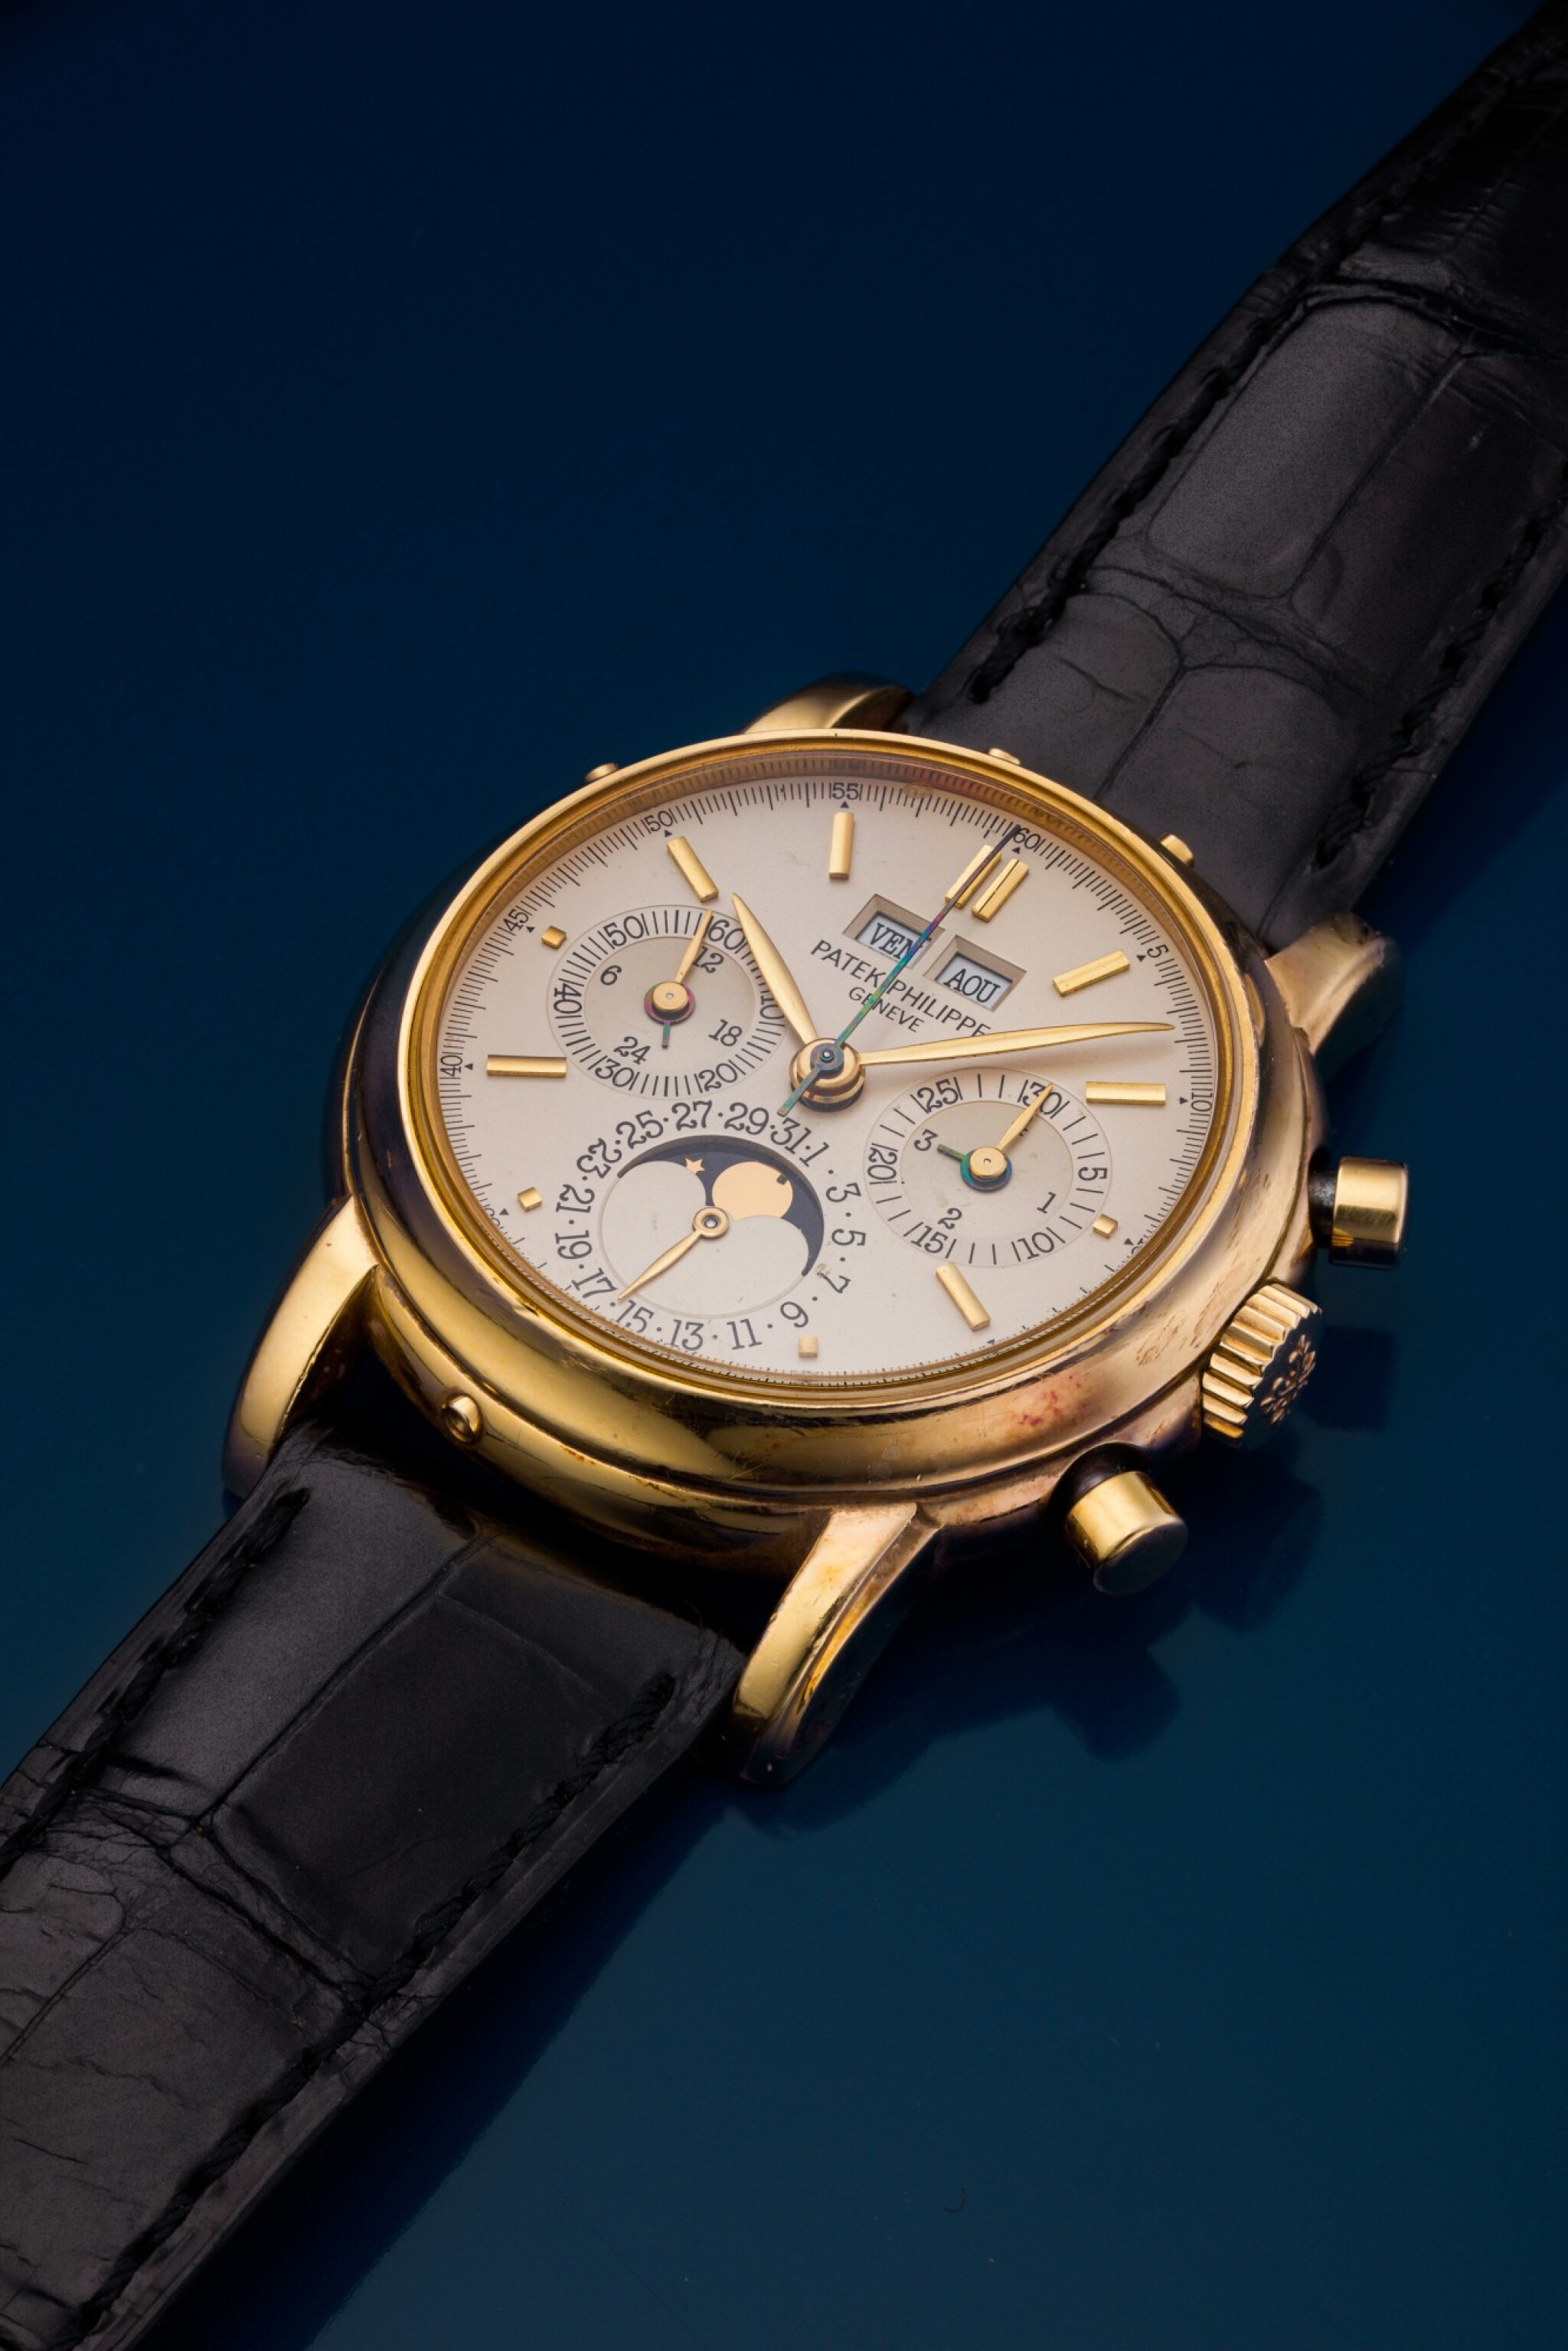 View full screen - View 1 of Lot 31. REFERENCE 3970/E 'SECOND SERIES' A YELLOW GOLD PERPETUAL CALENDAR CHRONOGRAPH WRISTWATCH WITH MOON PHASES, 24 HOURS AND LEAP YEAR INDICATION, MADE IN 1987.